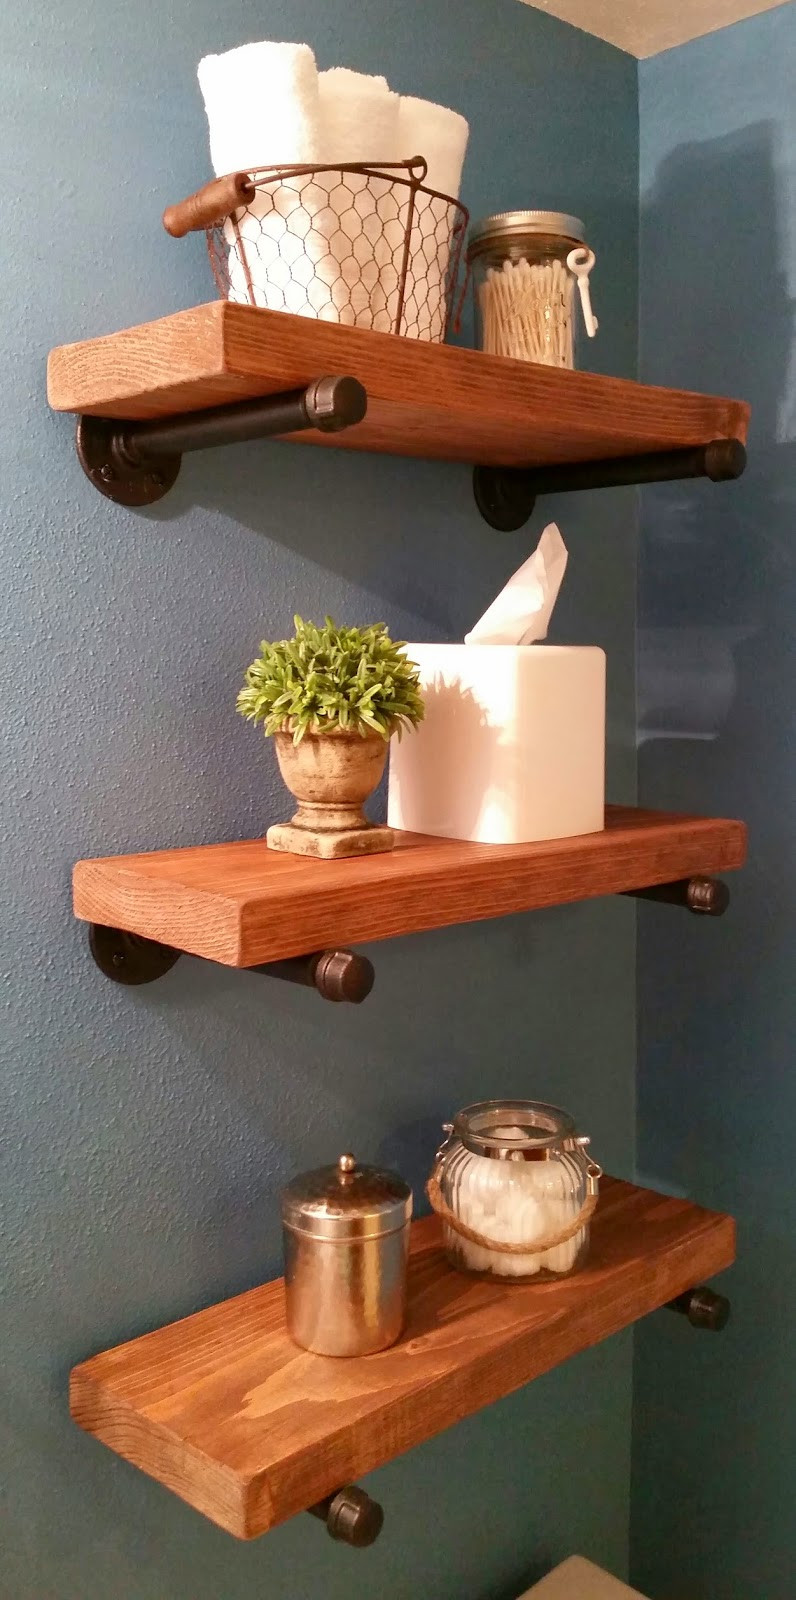 Best ideas about DIY Pipe Shelves . Save or Pin DIY Industrial Pipe Shelving Signed by Soden Now.